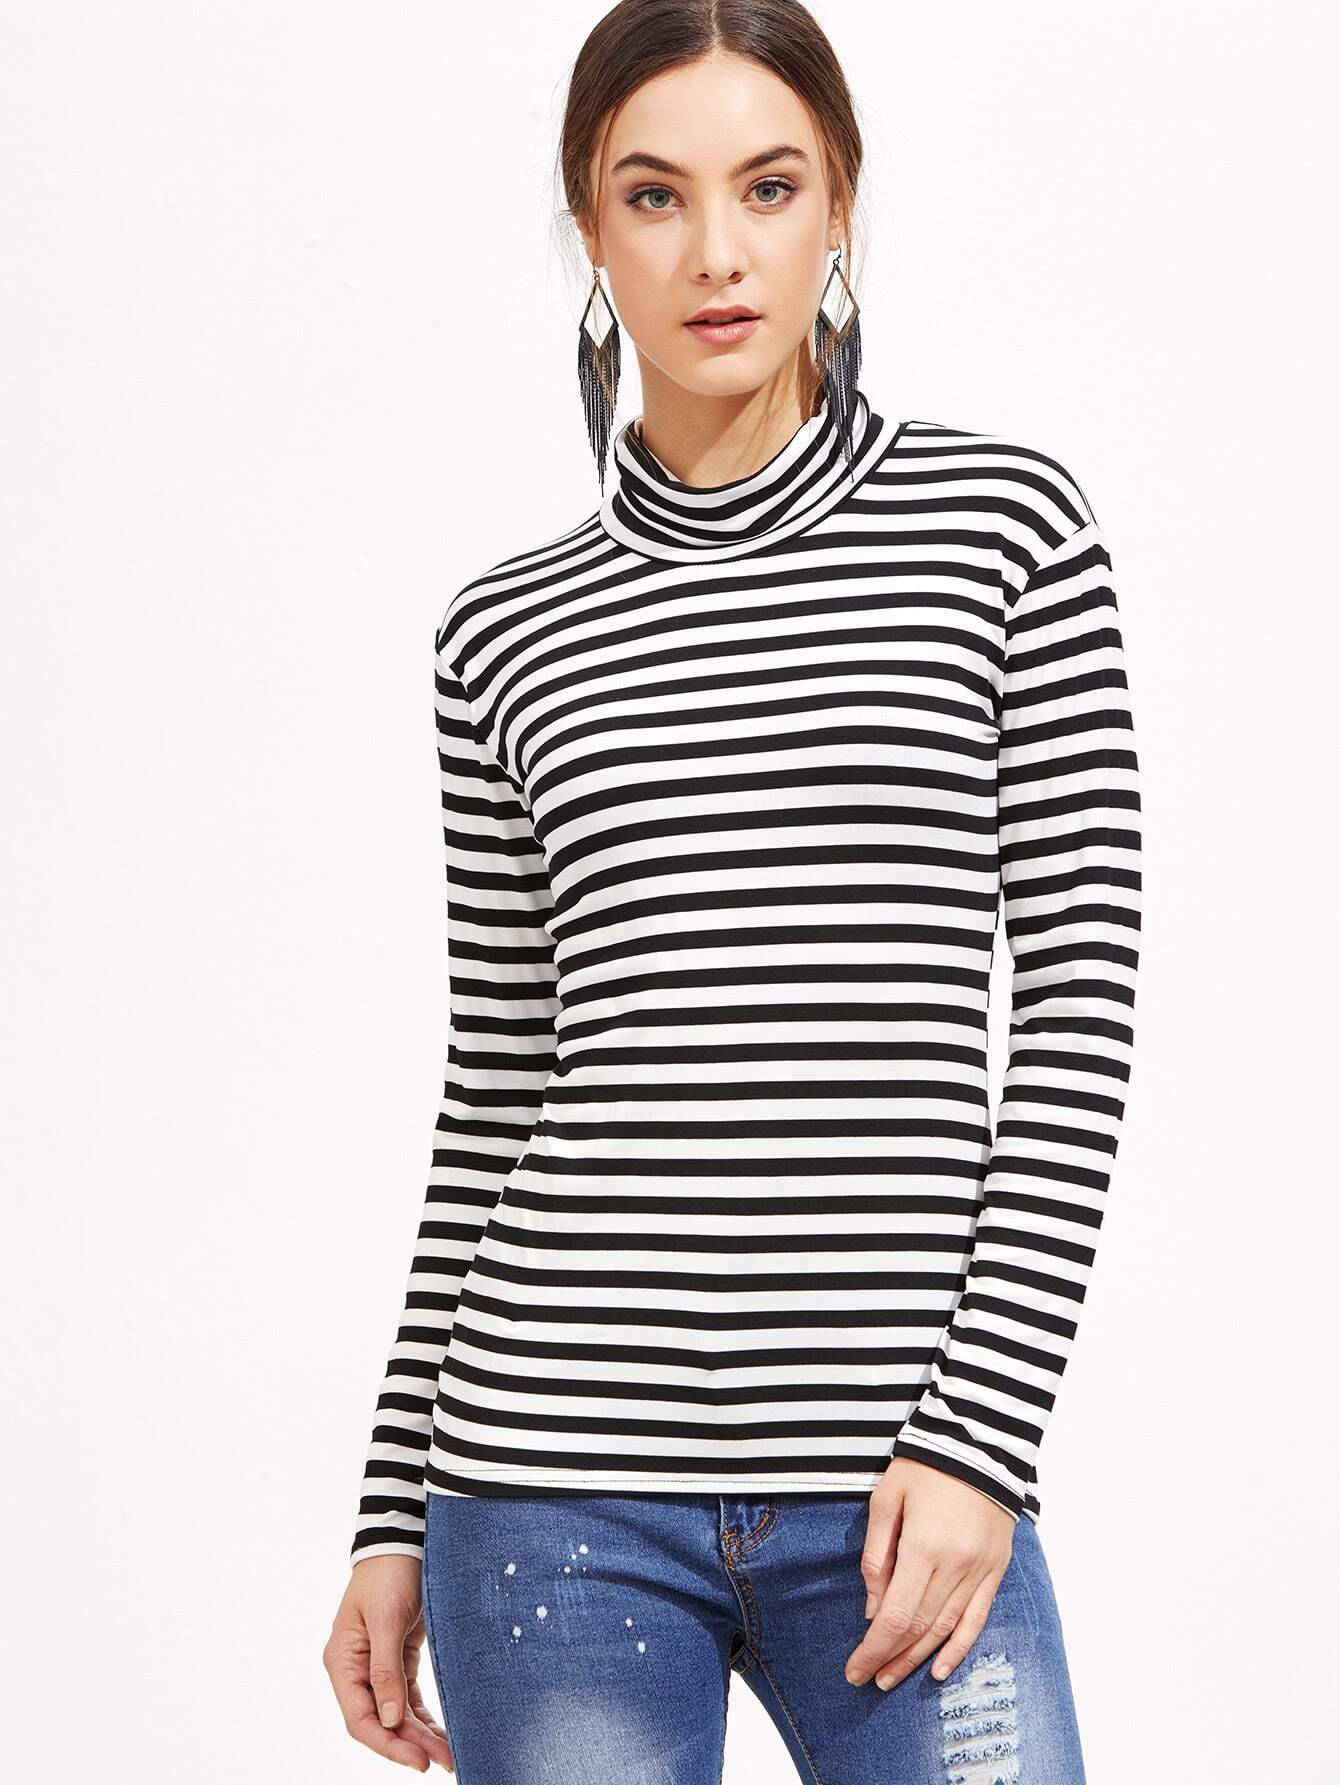 Black and white striped high neck t shirt for High neck tee shirts